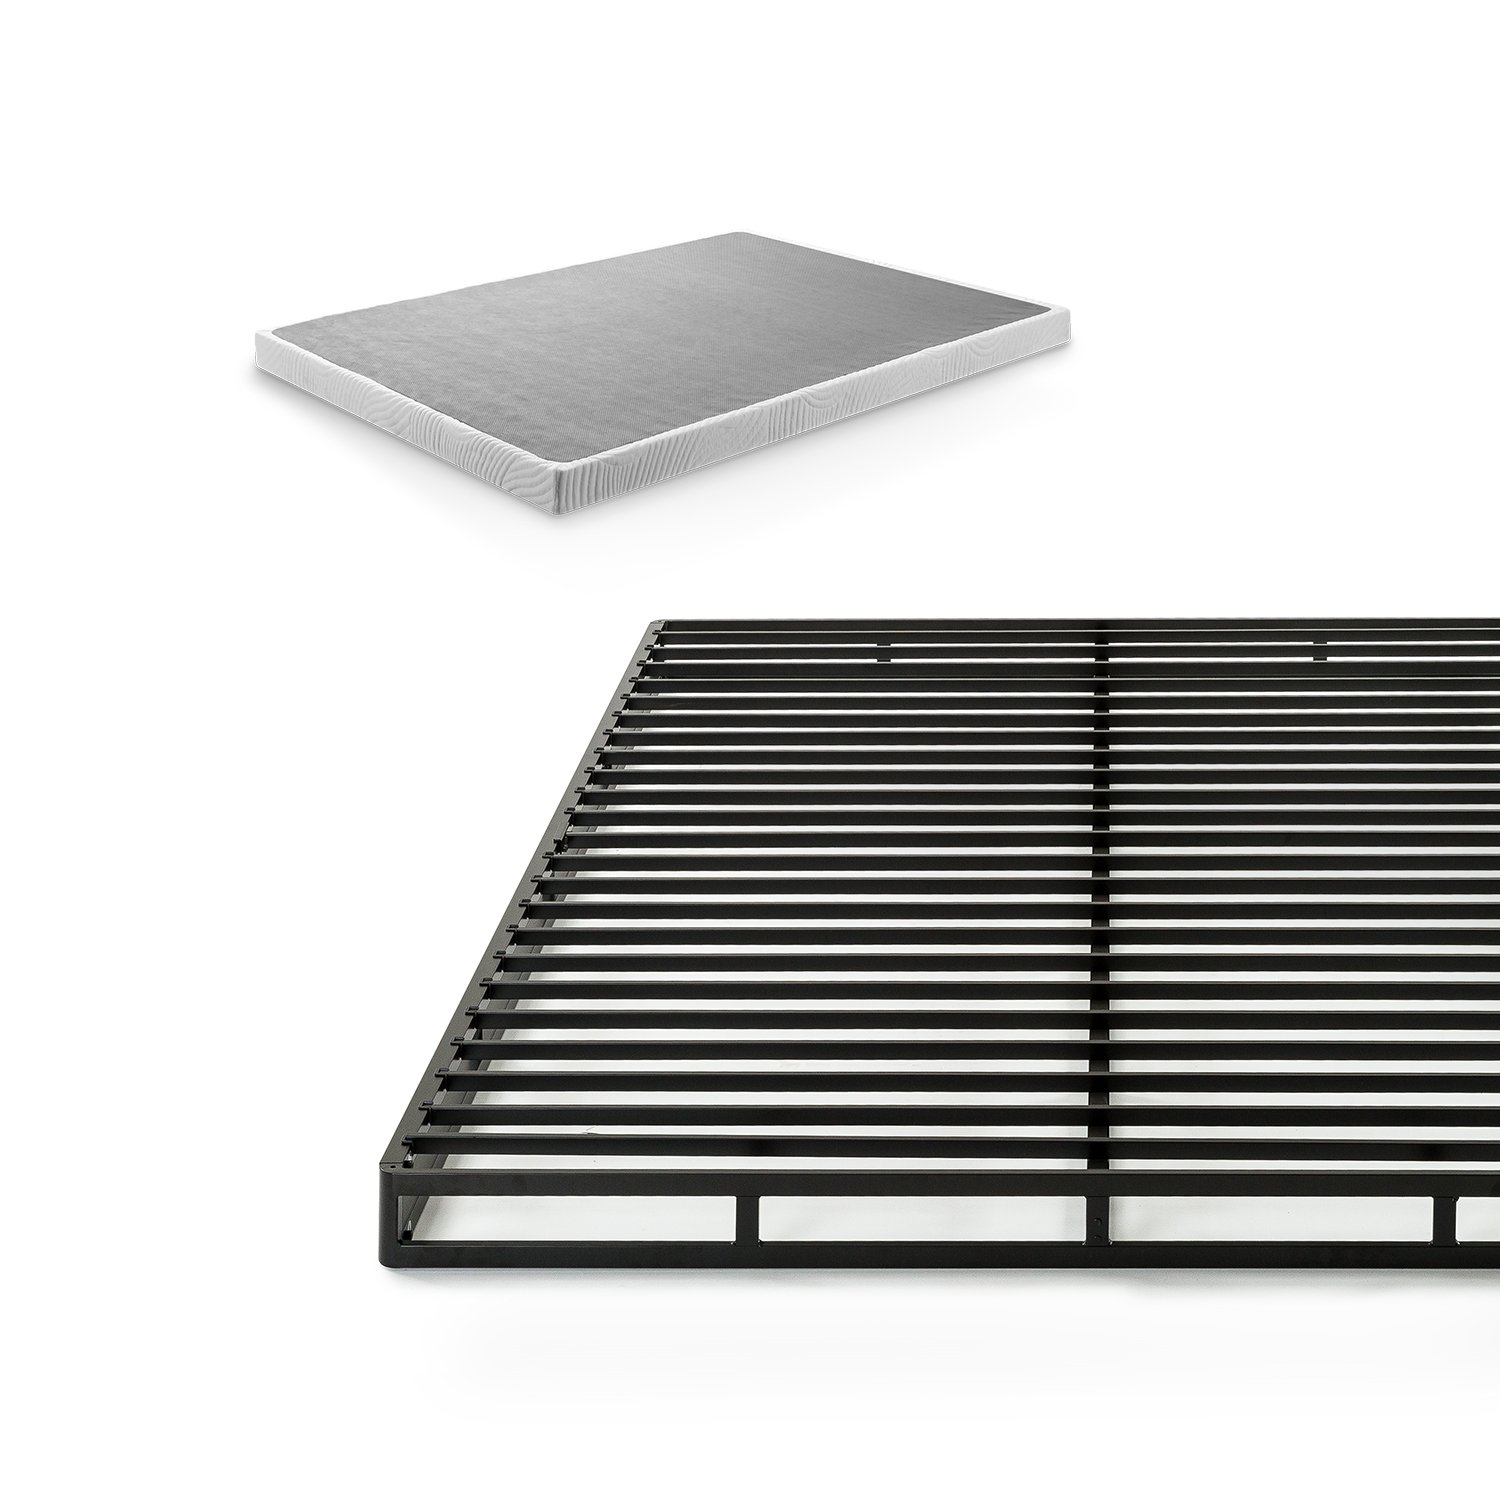 Zinus 4 Inch Low Profile Quick Lock Smart Box Spring / Mattress Foundation / Strong Steel Structure / Easy Assembly, Queen